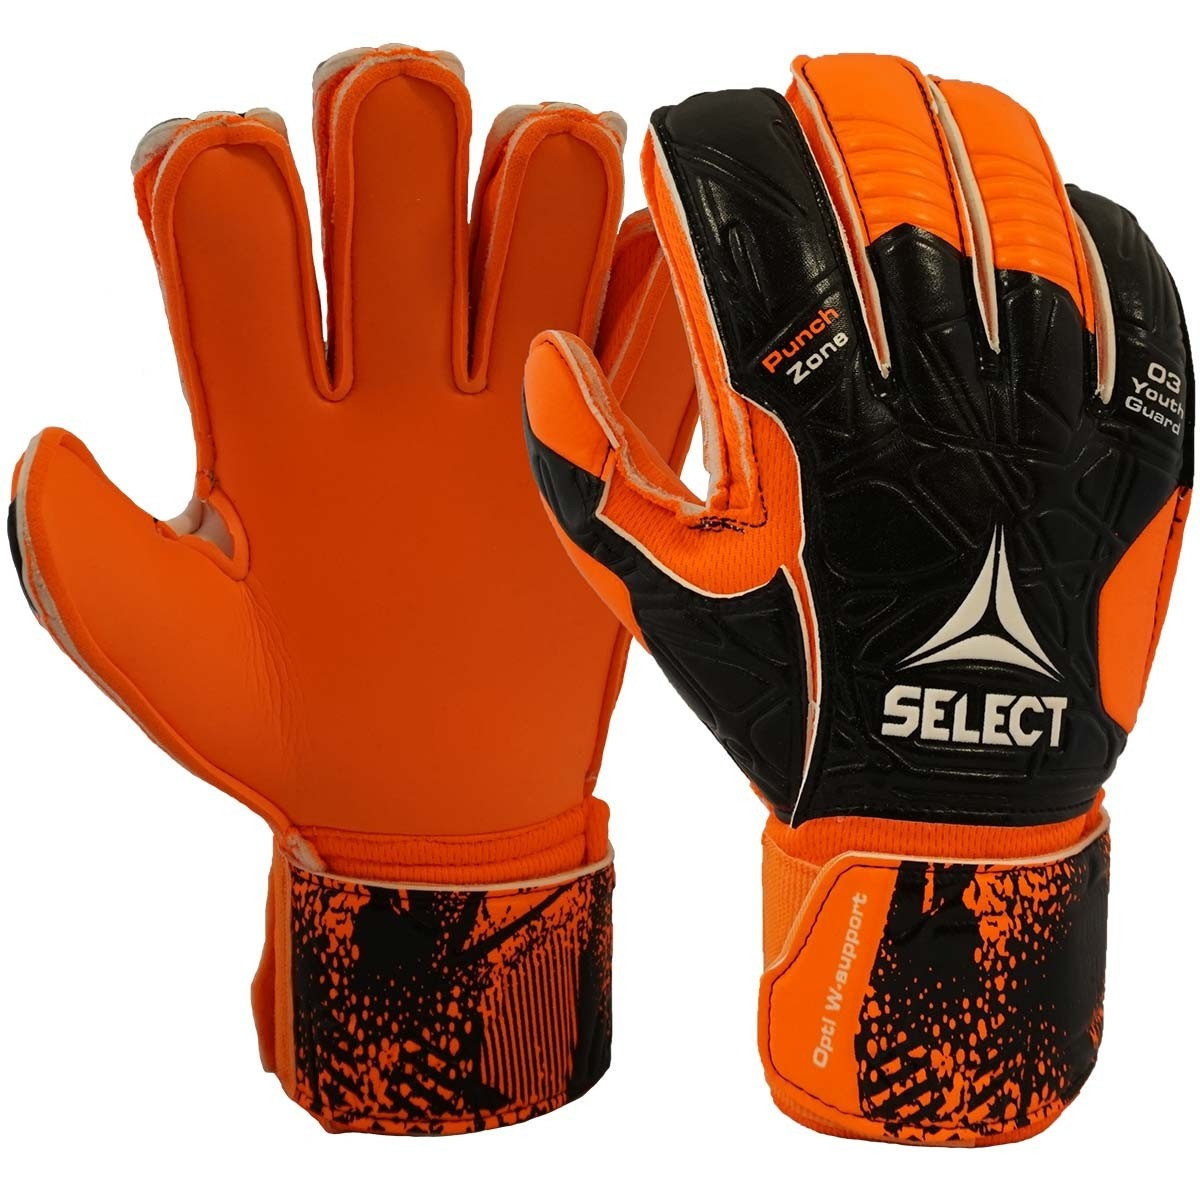 Select 03 Youth Protec Goalkeeper Gloves